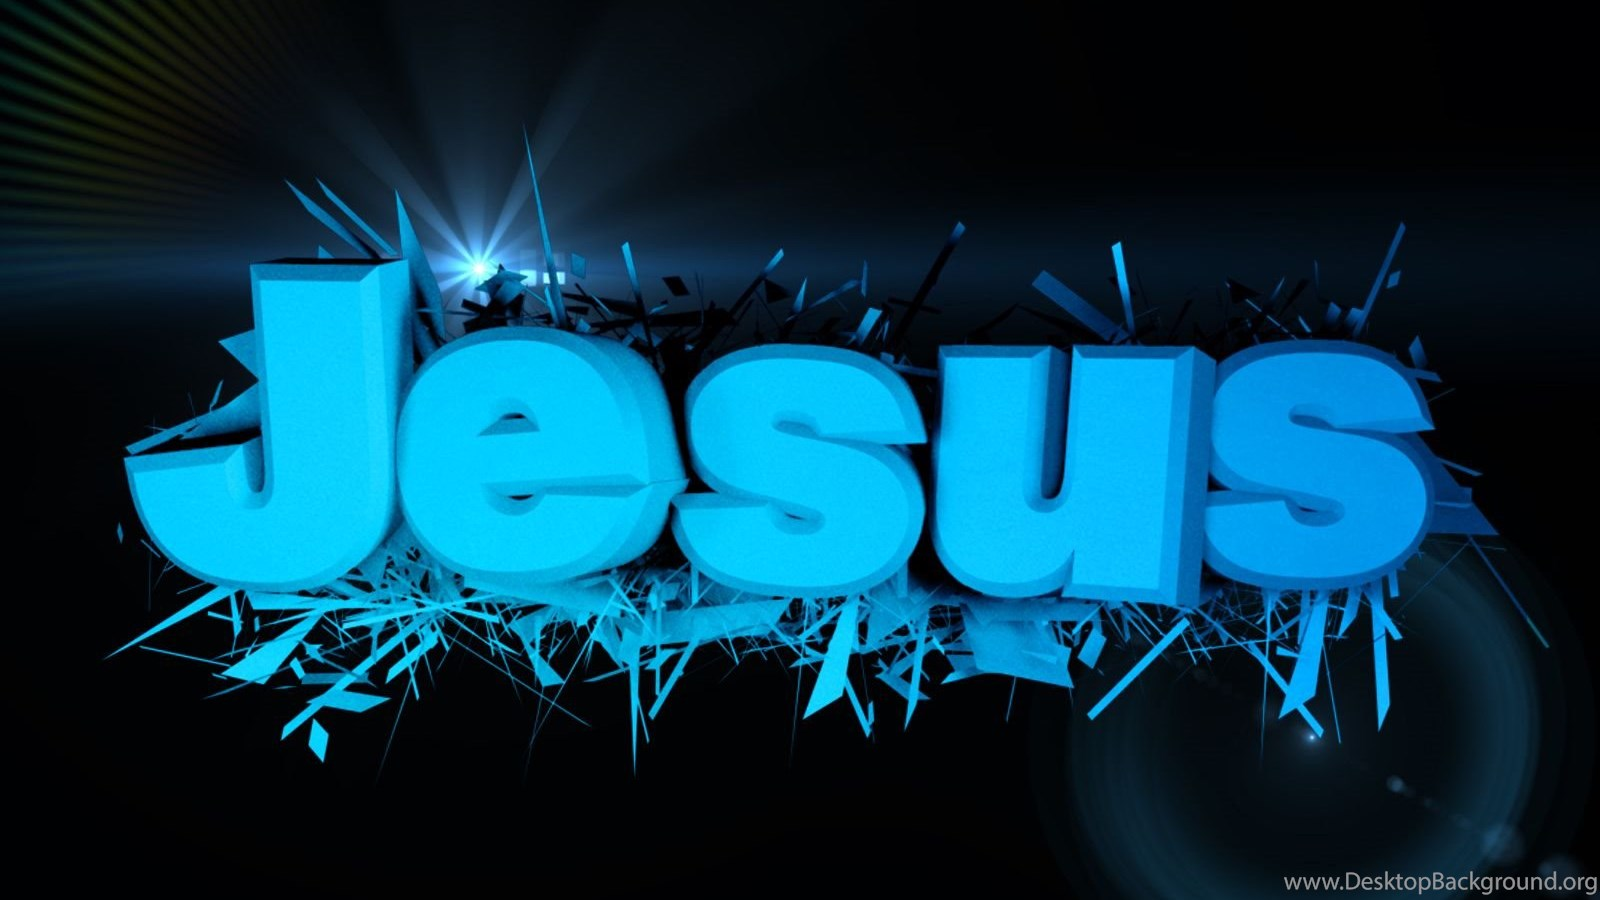 3D Jesus Wallpapers HD And Pictures Desktop Background